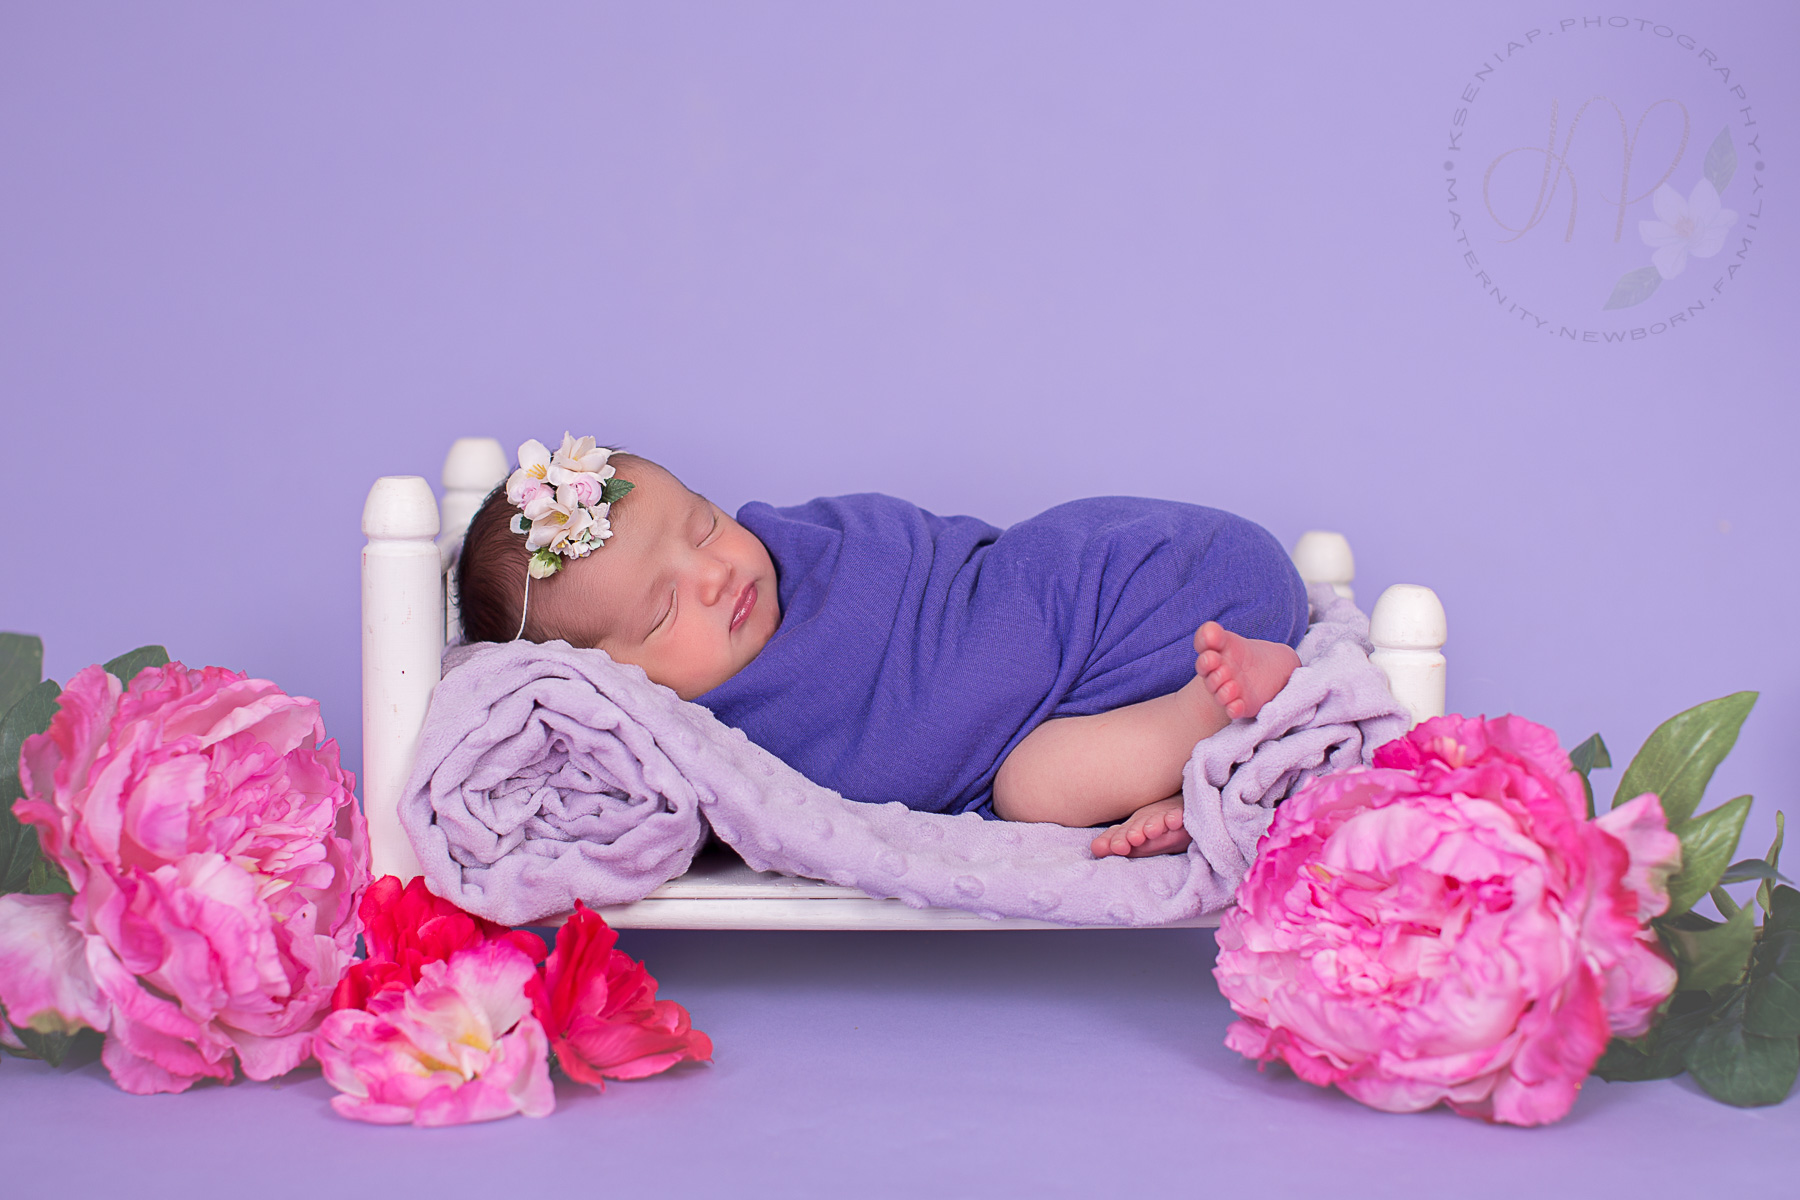 Image of baby wrapped up in purple wrap and asleep on a prop bed with flowers around it.